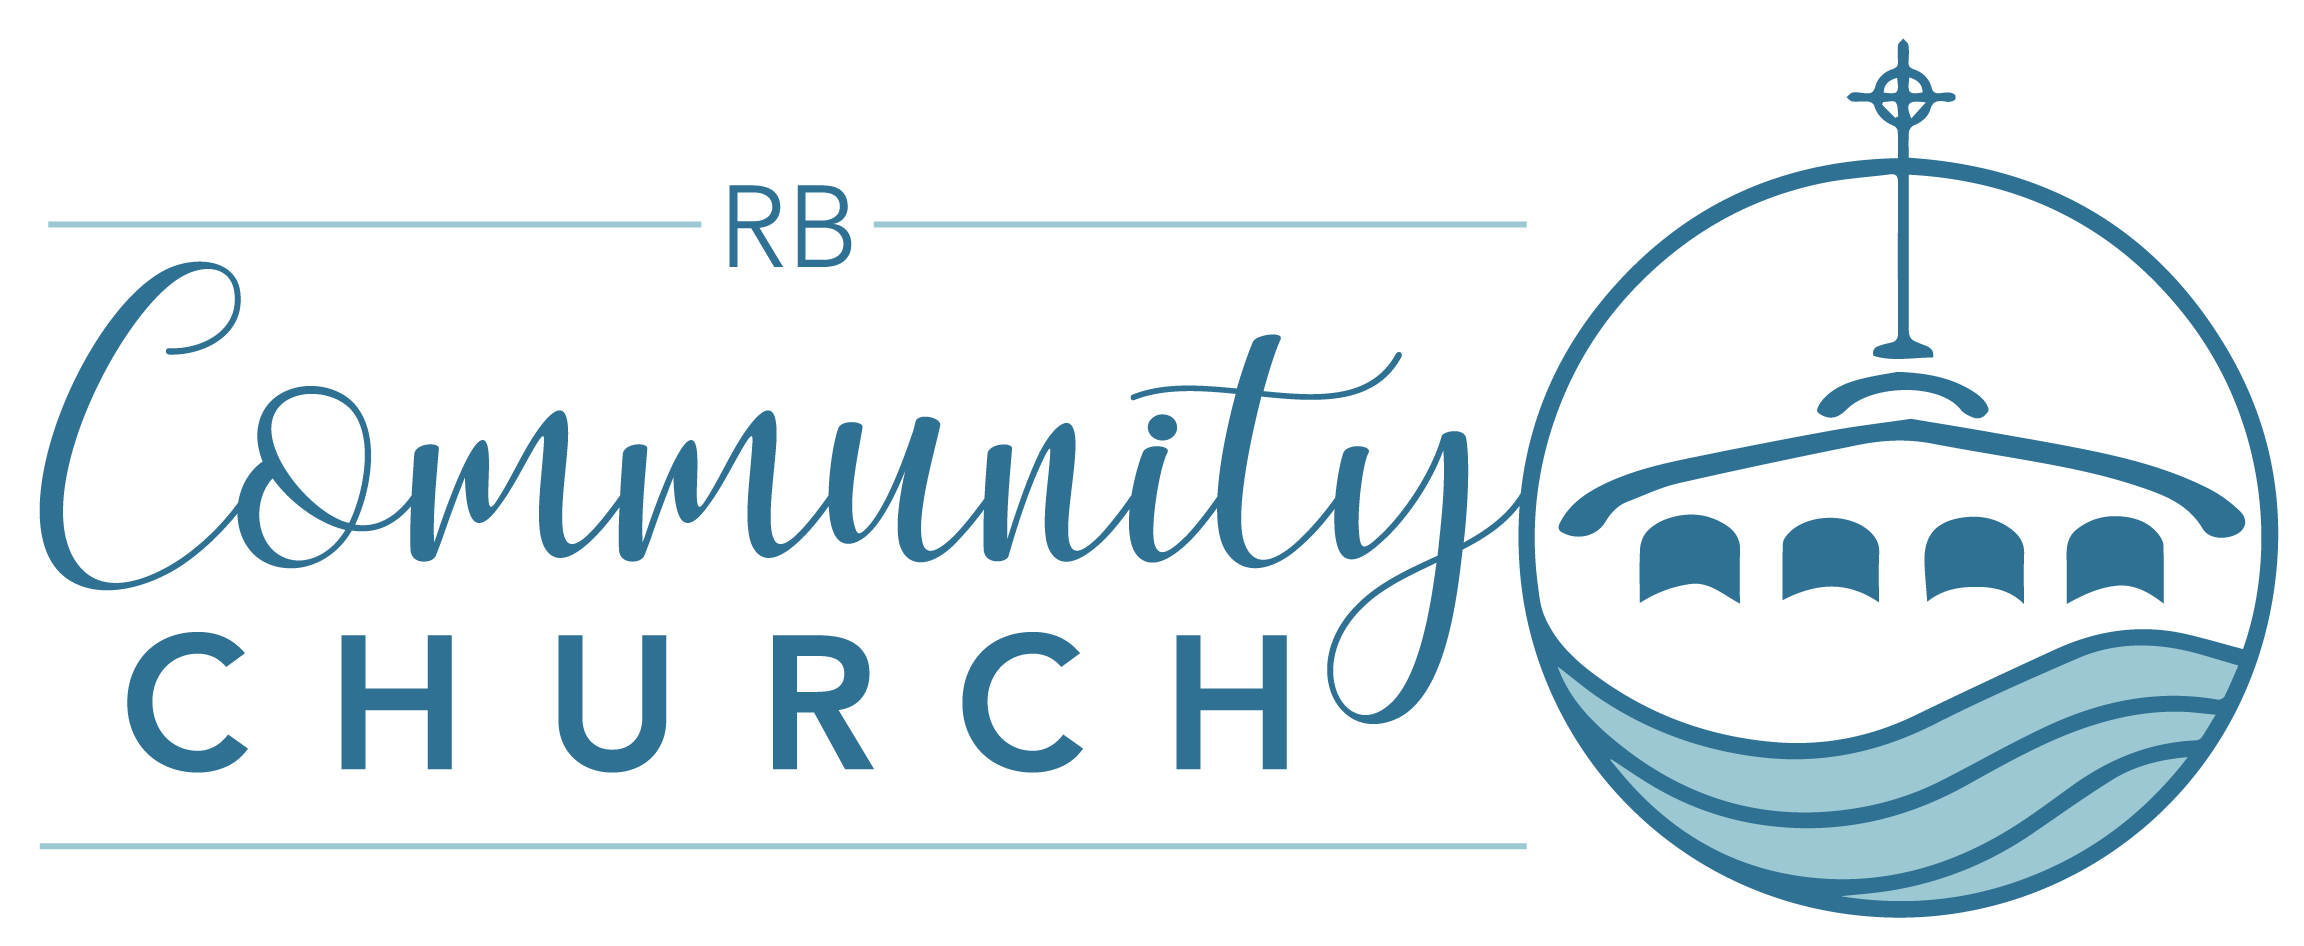 RB Community Church